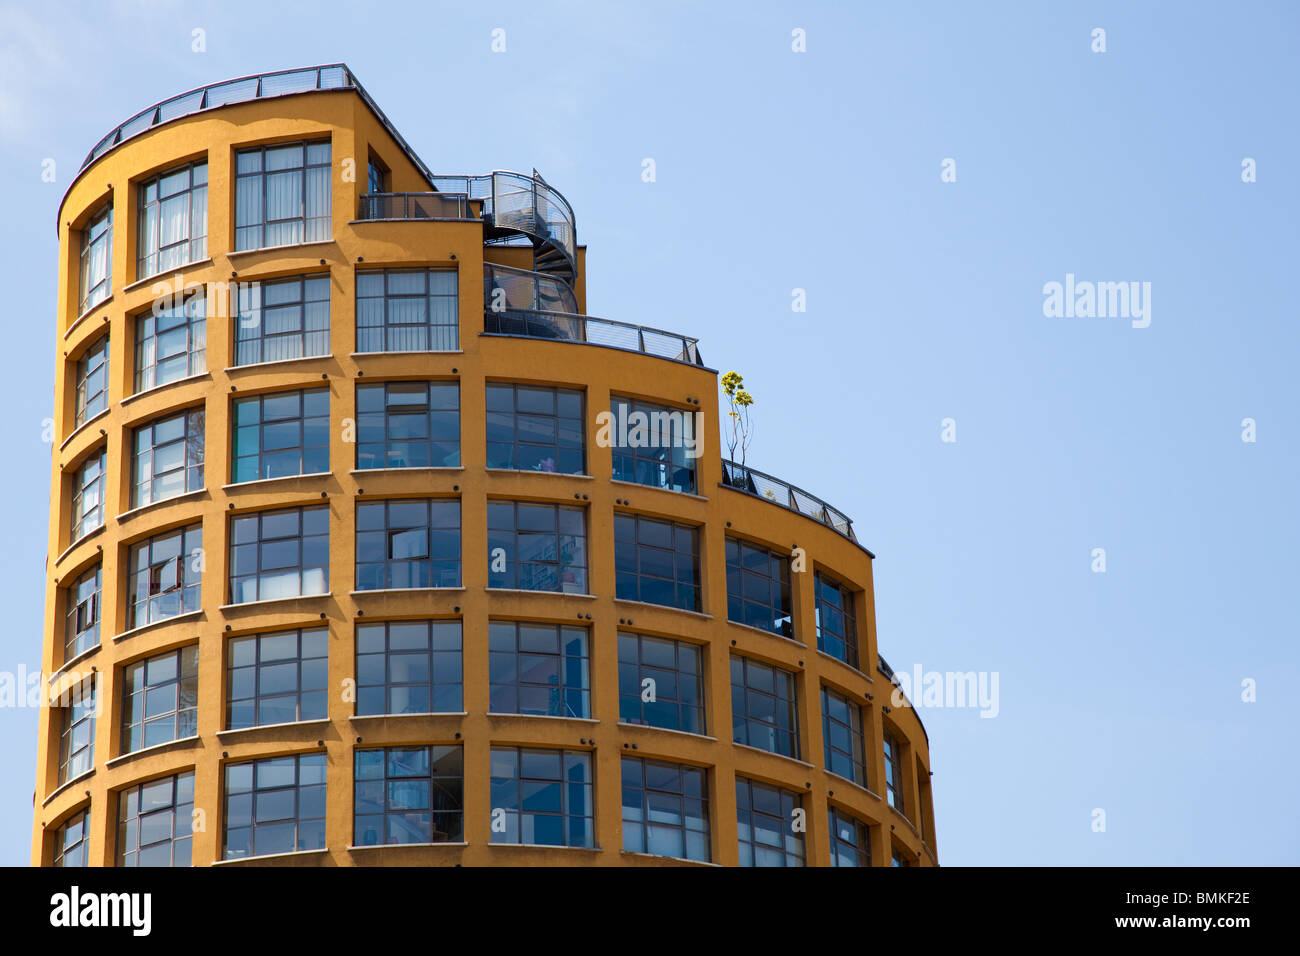 Round tall building with roof garden, Southwark, London, UK - Stock Image